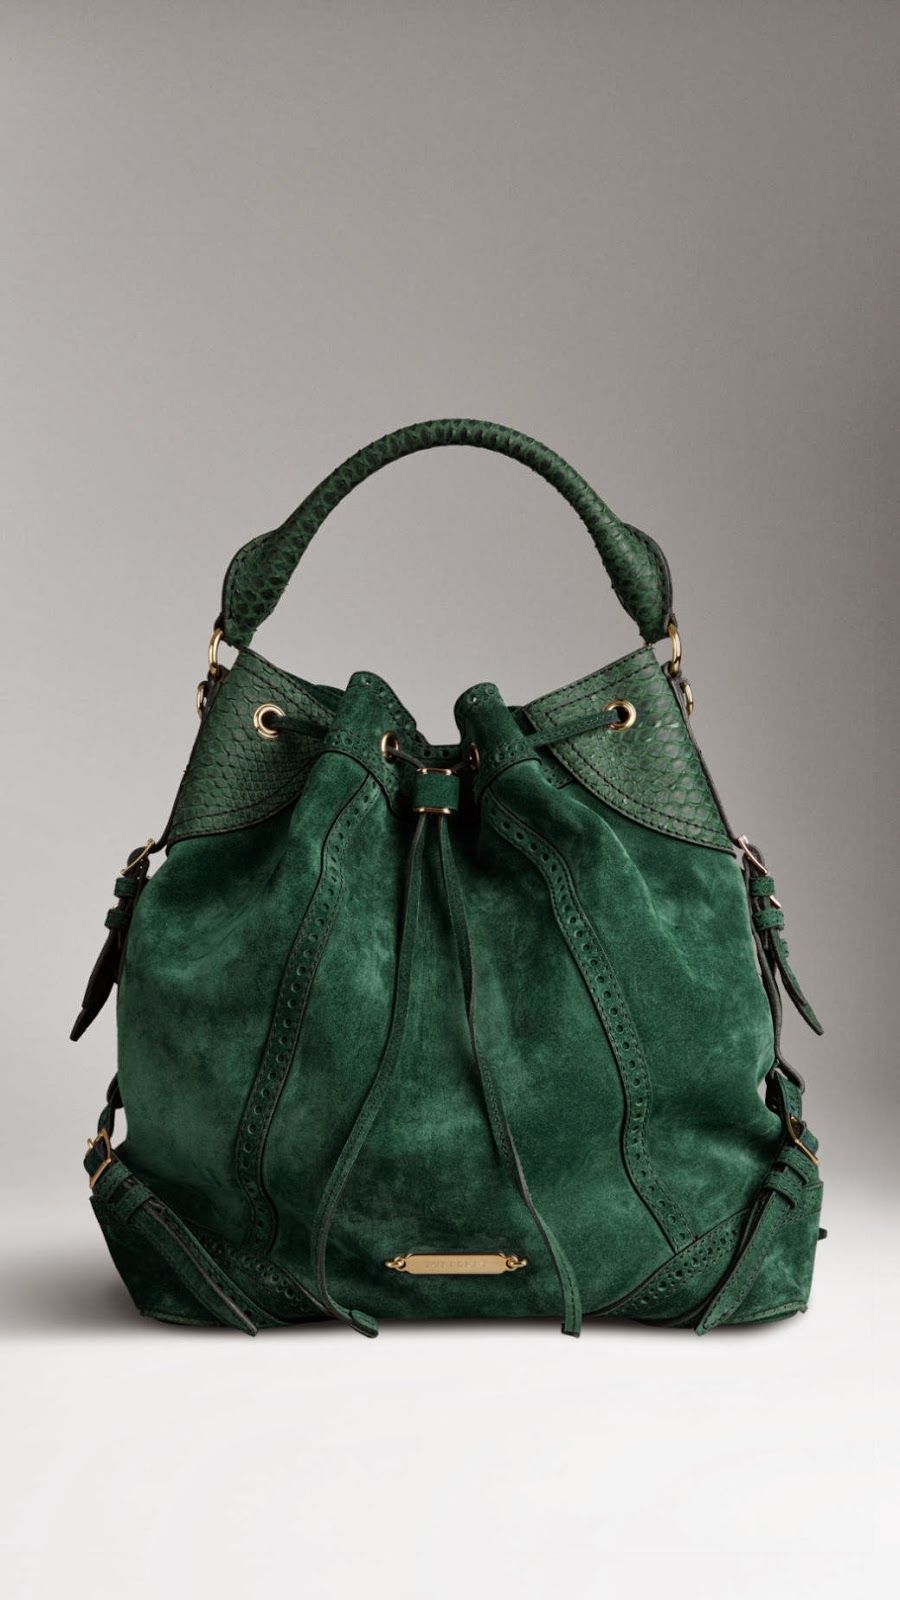 Ladies handbags. For the majority of women 0e877d36d95d7